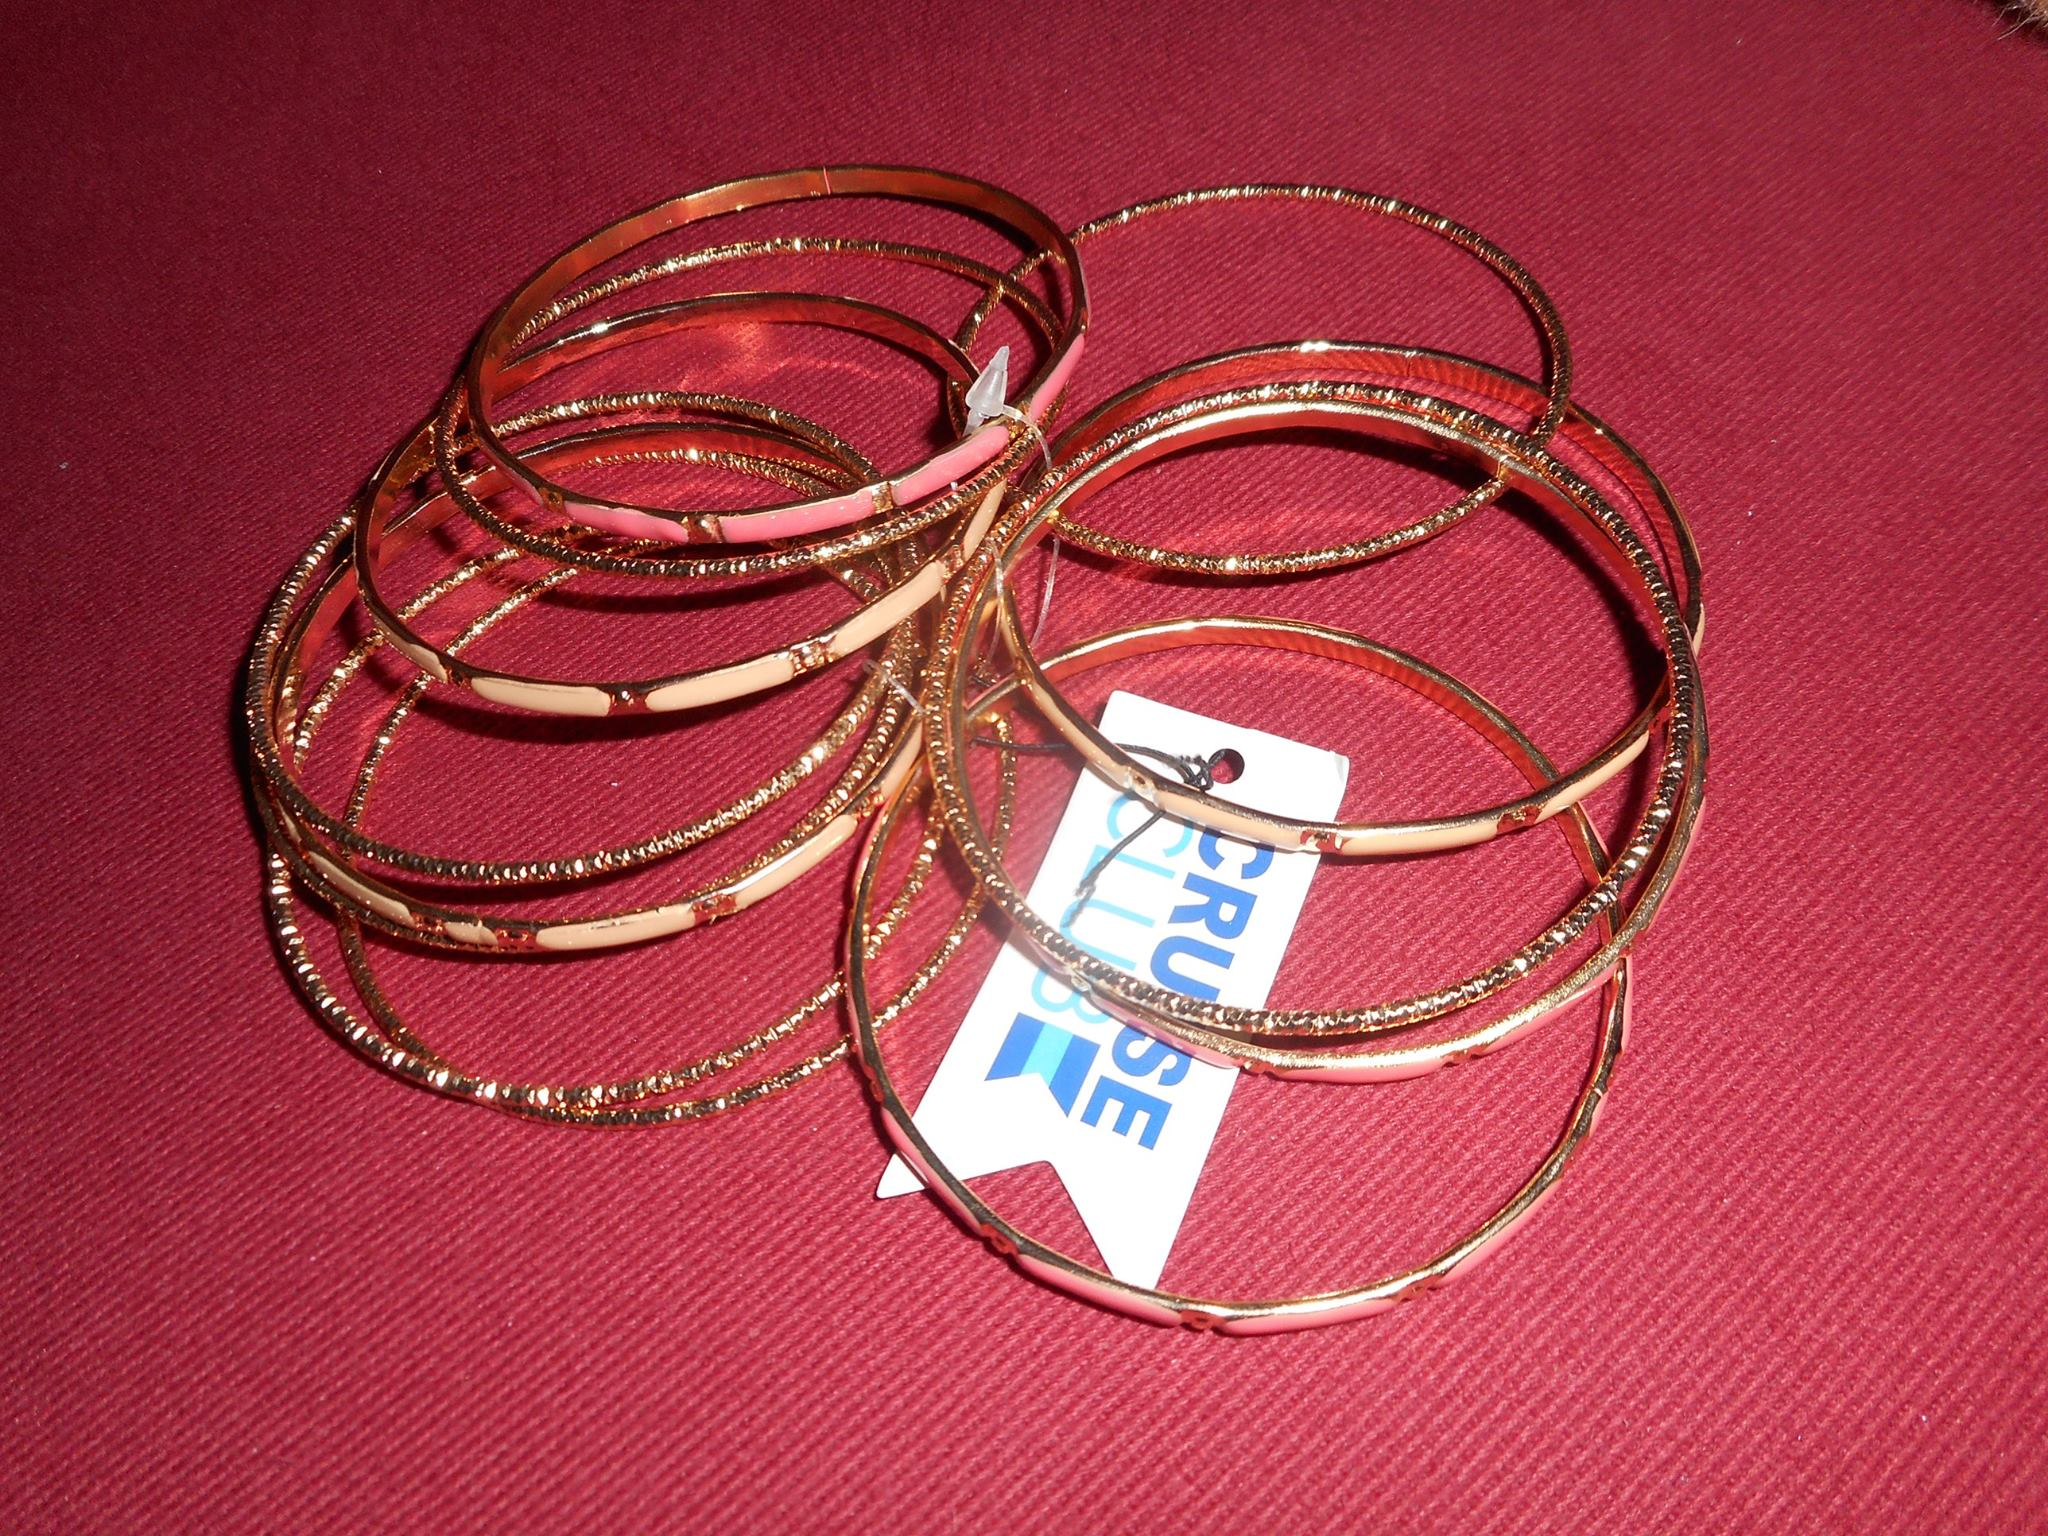 Bangles from the cruise – Fun Features